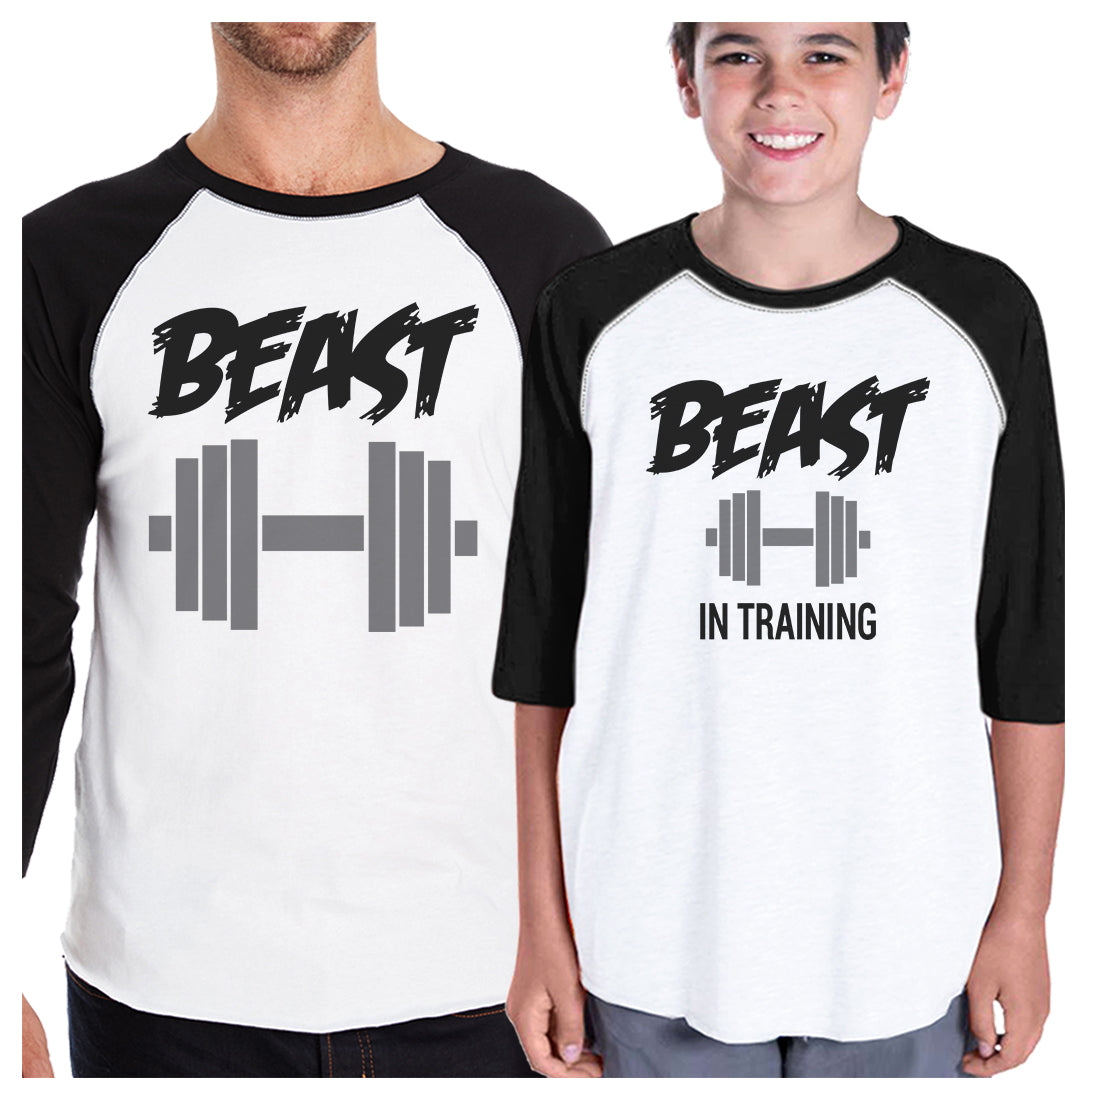 0cf64c4f634 Beast In Training Dad and Kid Matching Baseball Shirts New Dad Gift ...